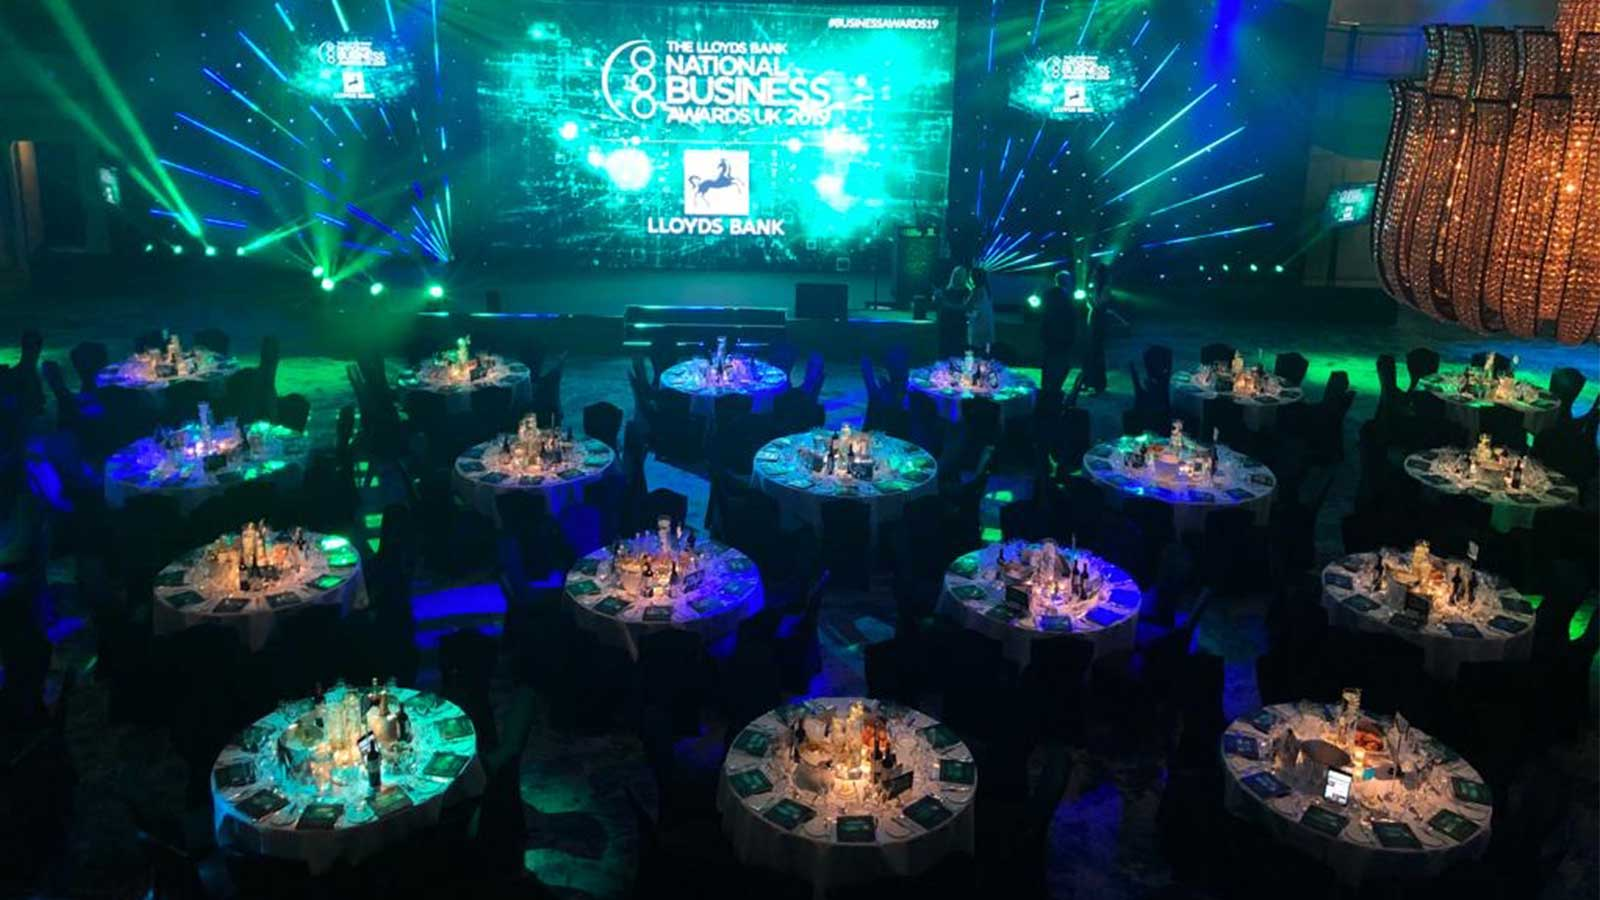 Lloyds Bank National Business Awards 2019